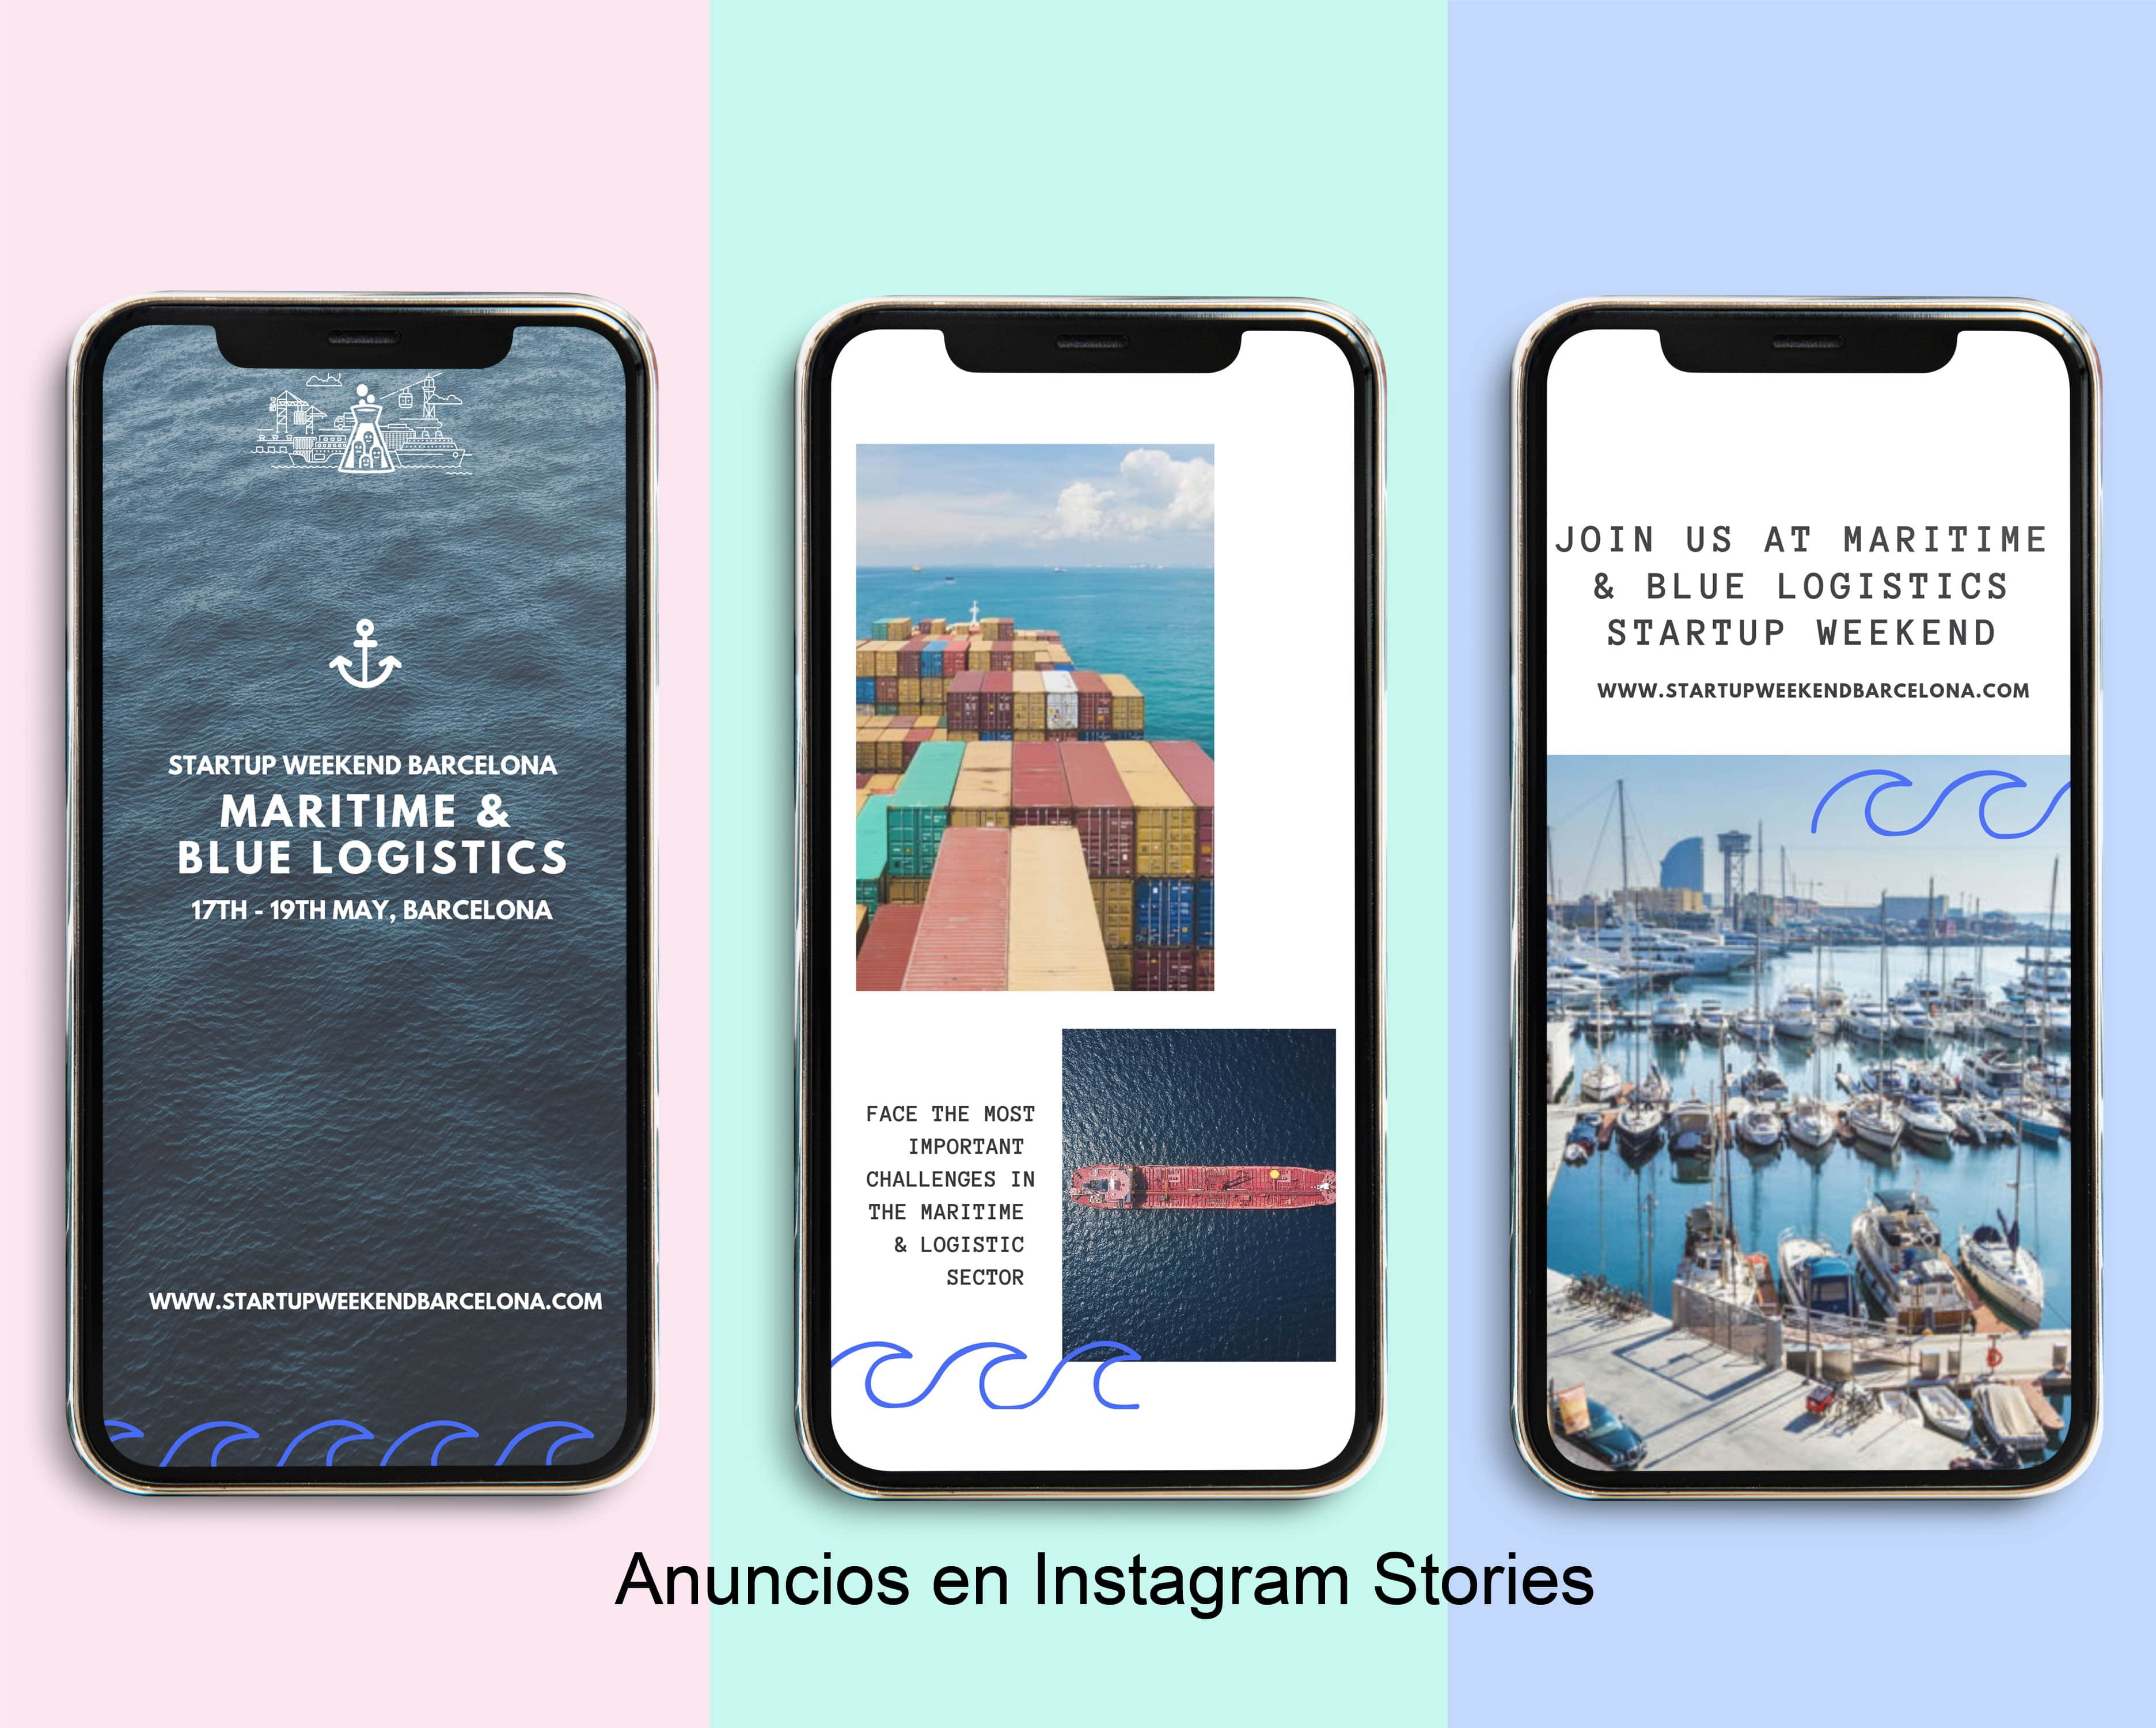 stories-anuncios-startup-weekend-maritime